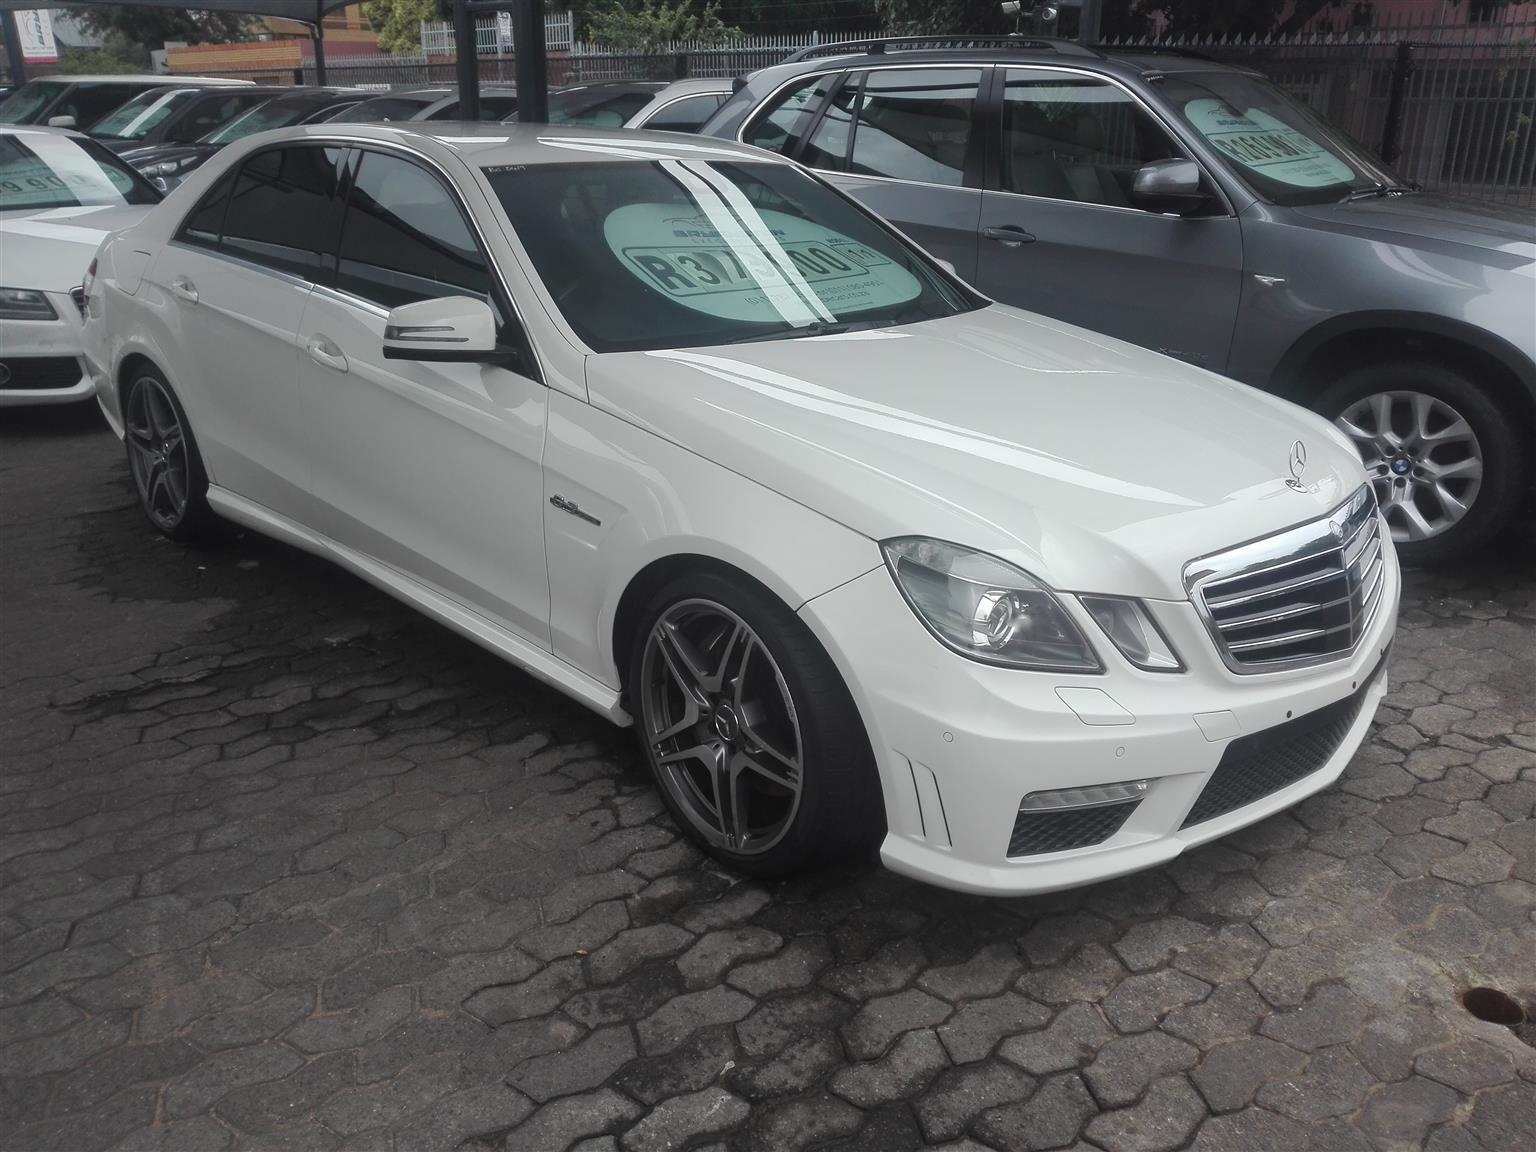 2011 Mercedes Benz E-Class sedan AMG E63 S 4MATIC